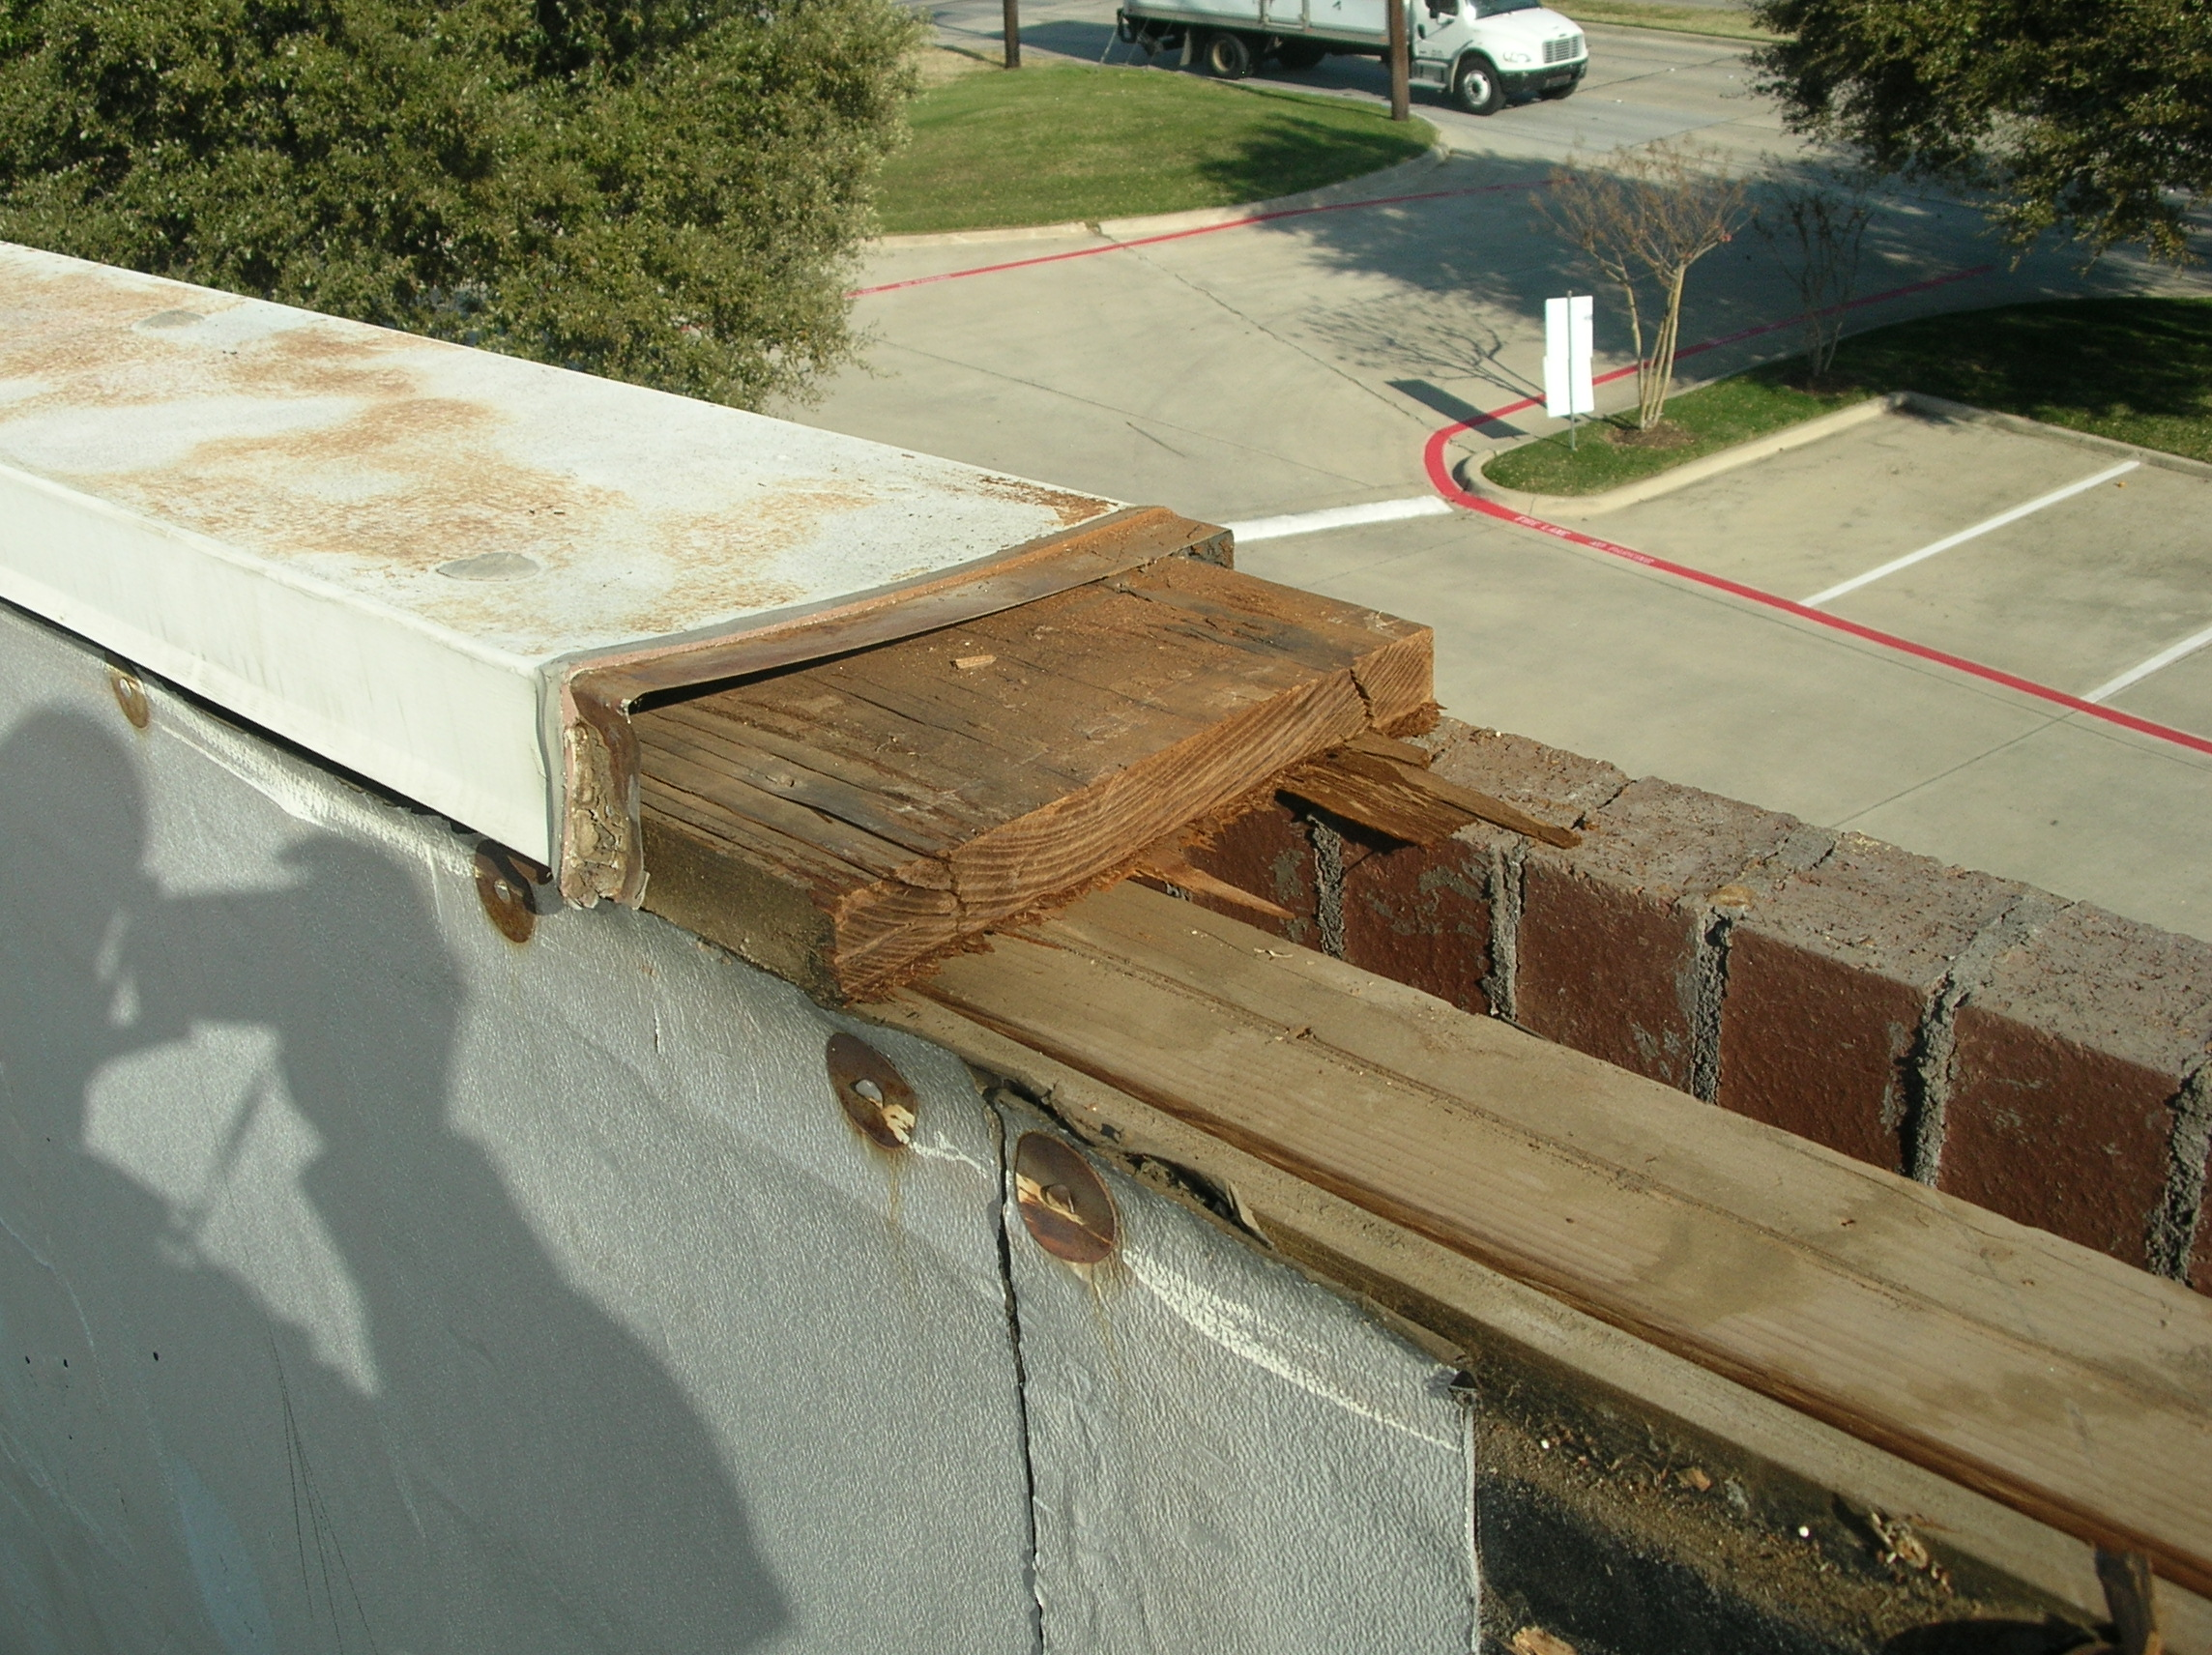 Metal coping, or cap flashing, being removed from a parapet wall.